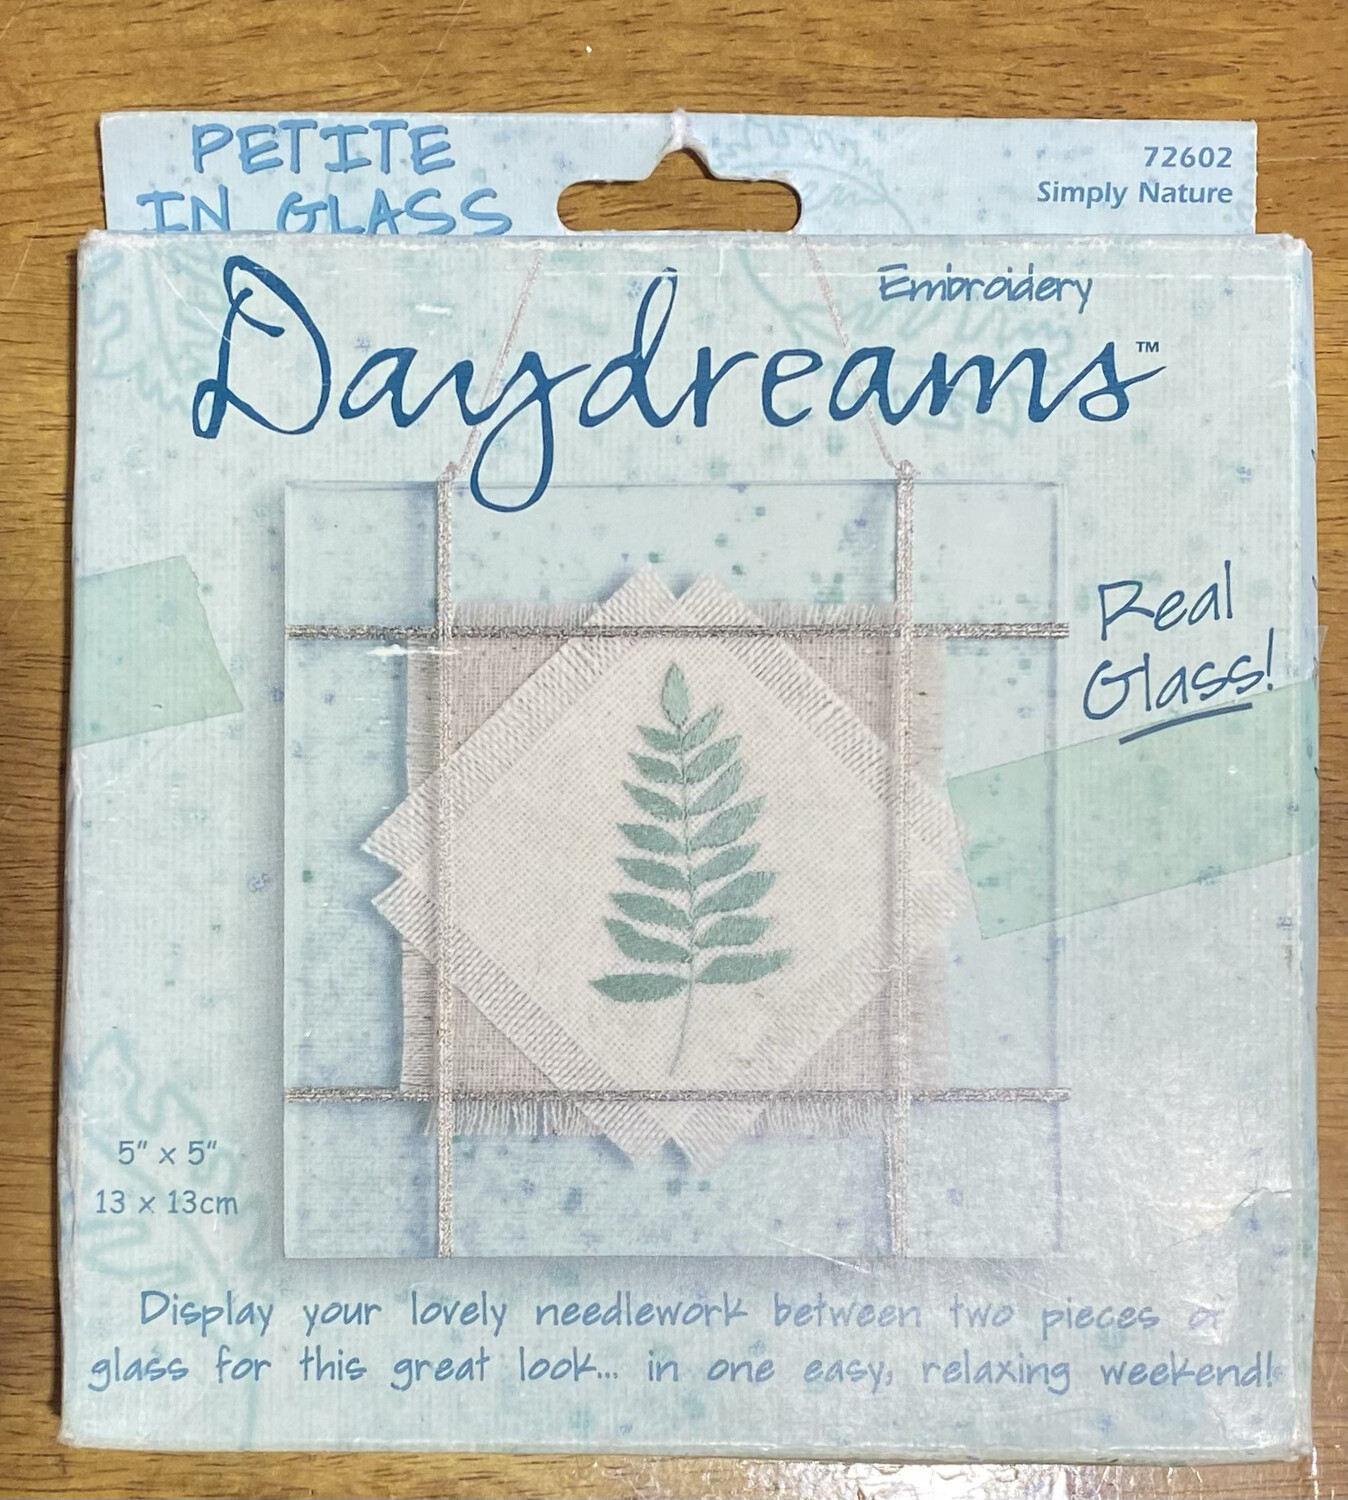 Petite in Glass - Daydreams Simply Nature (72602)